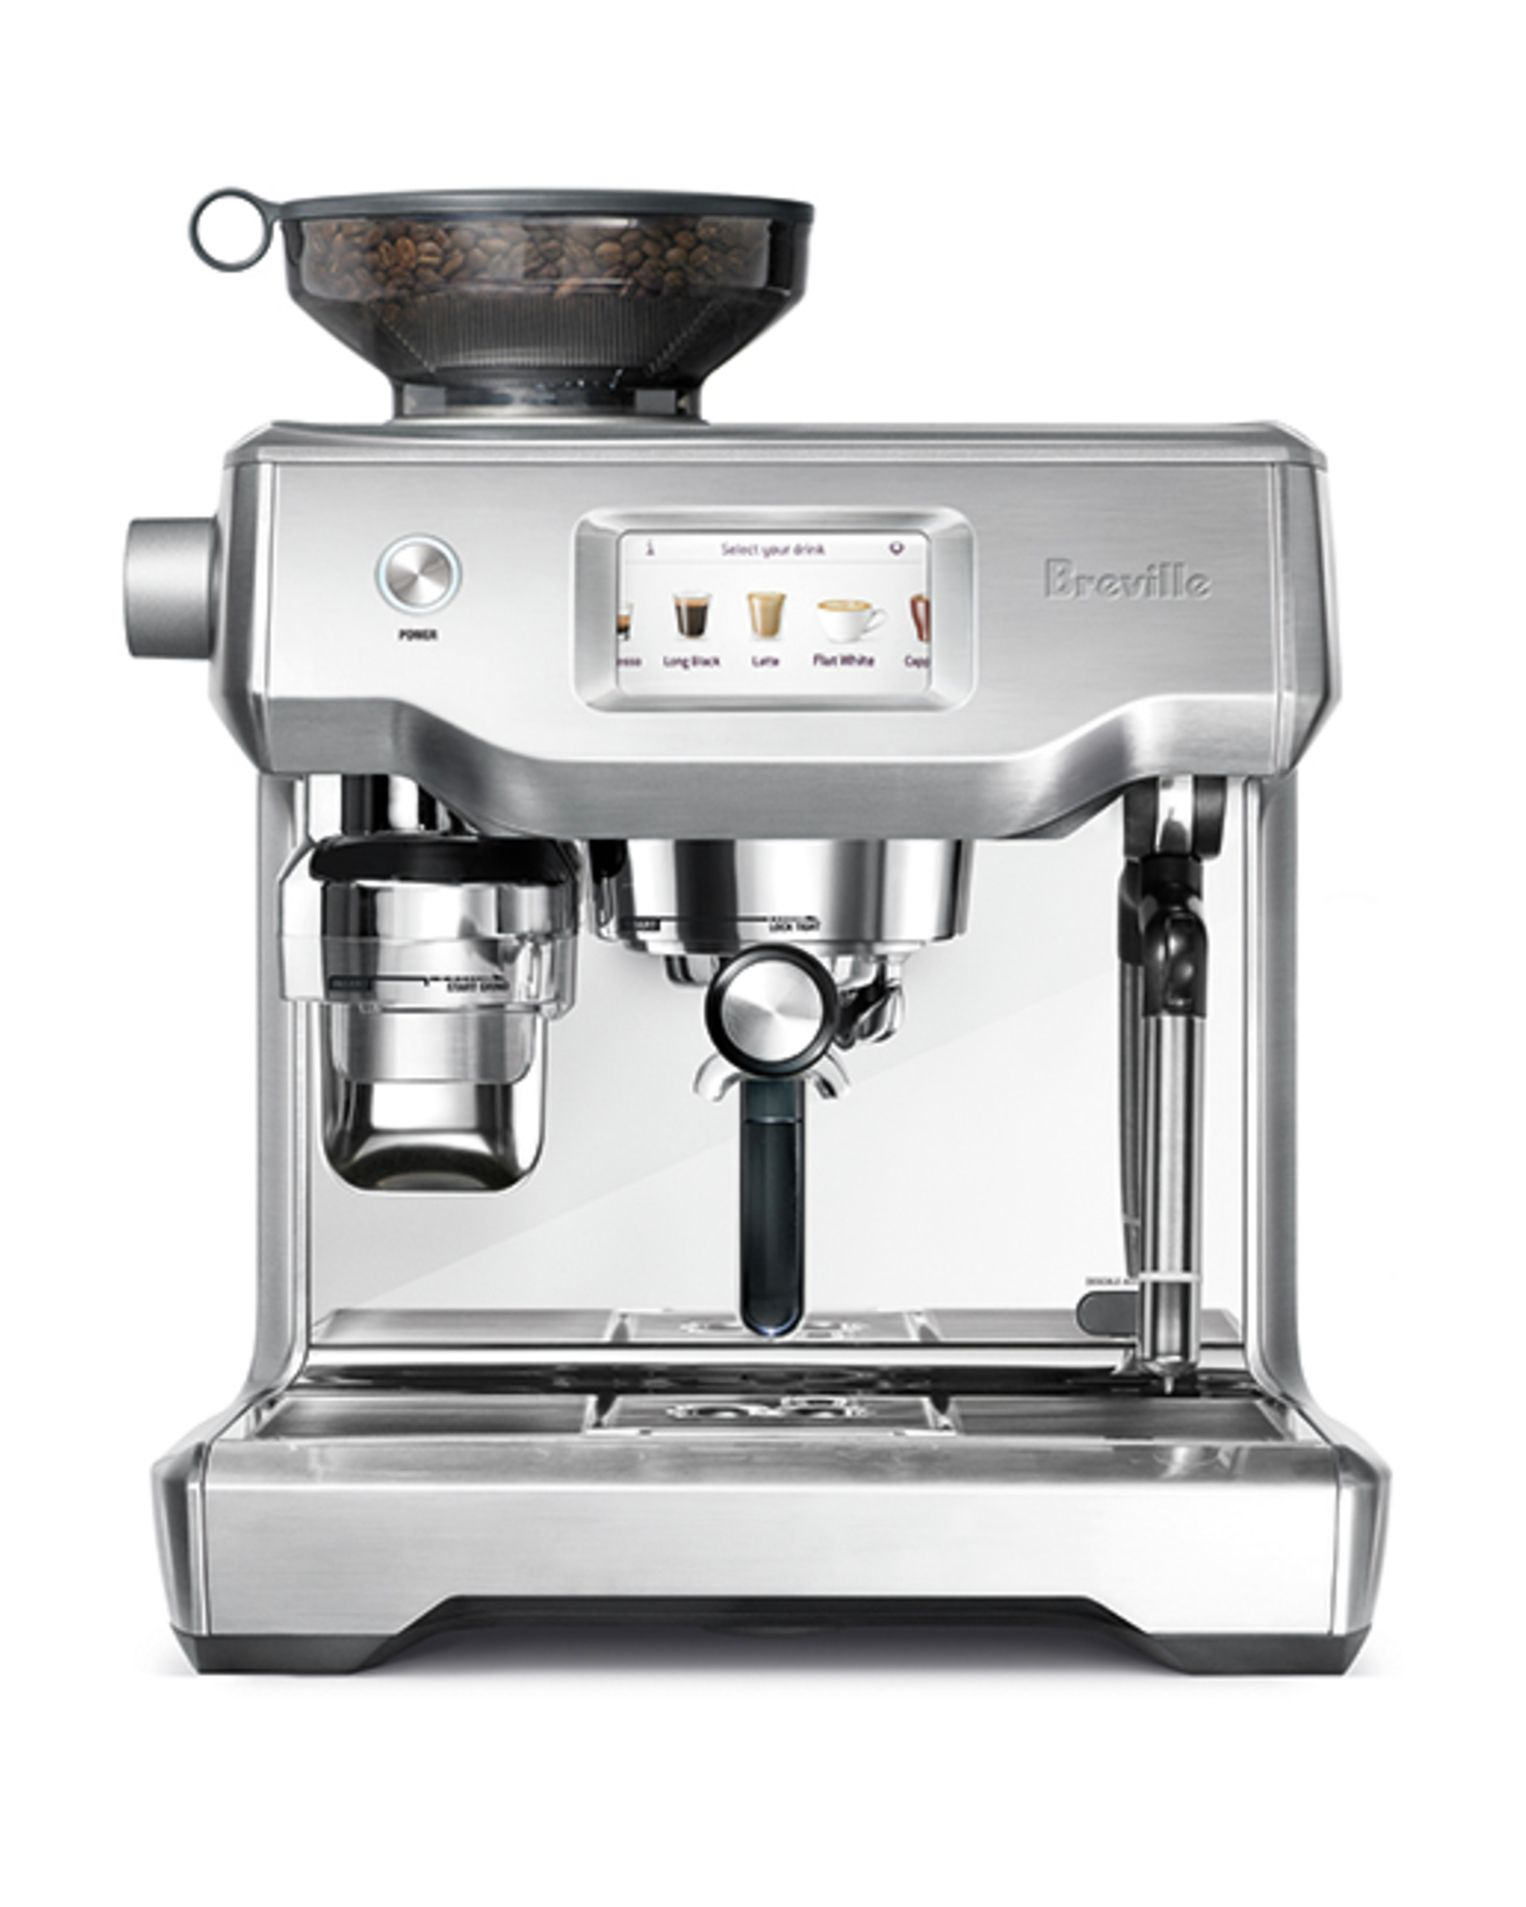 Christmas Gifts Home espresso machine, Breville espresso